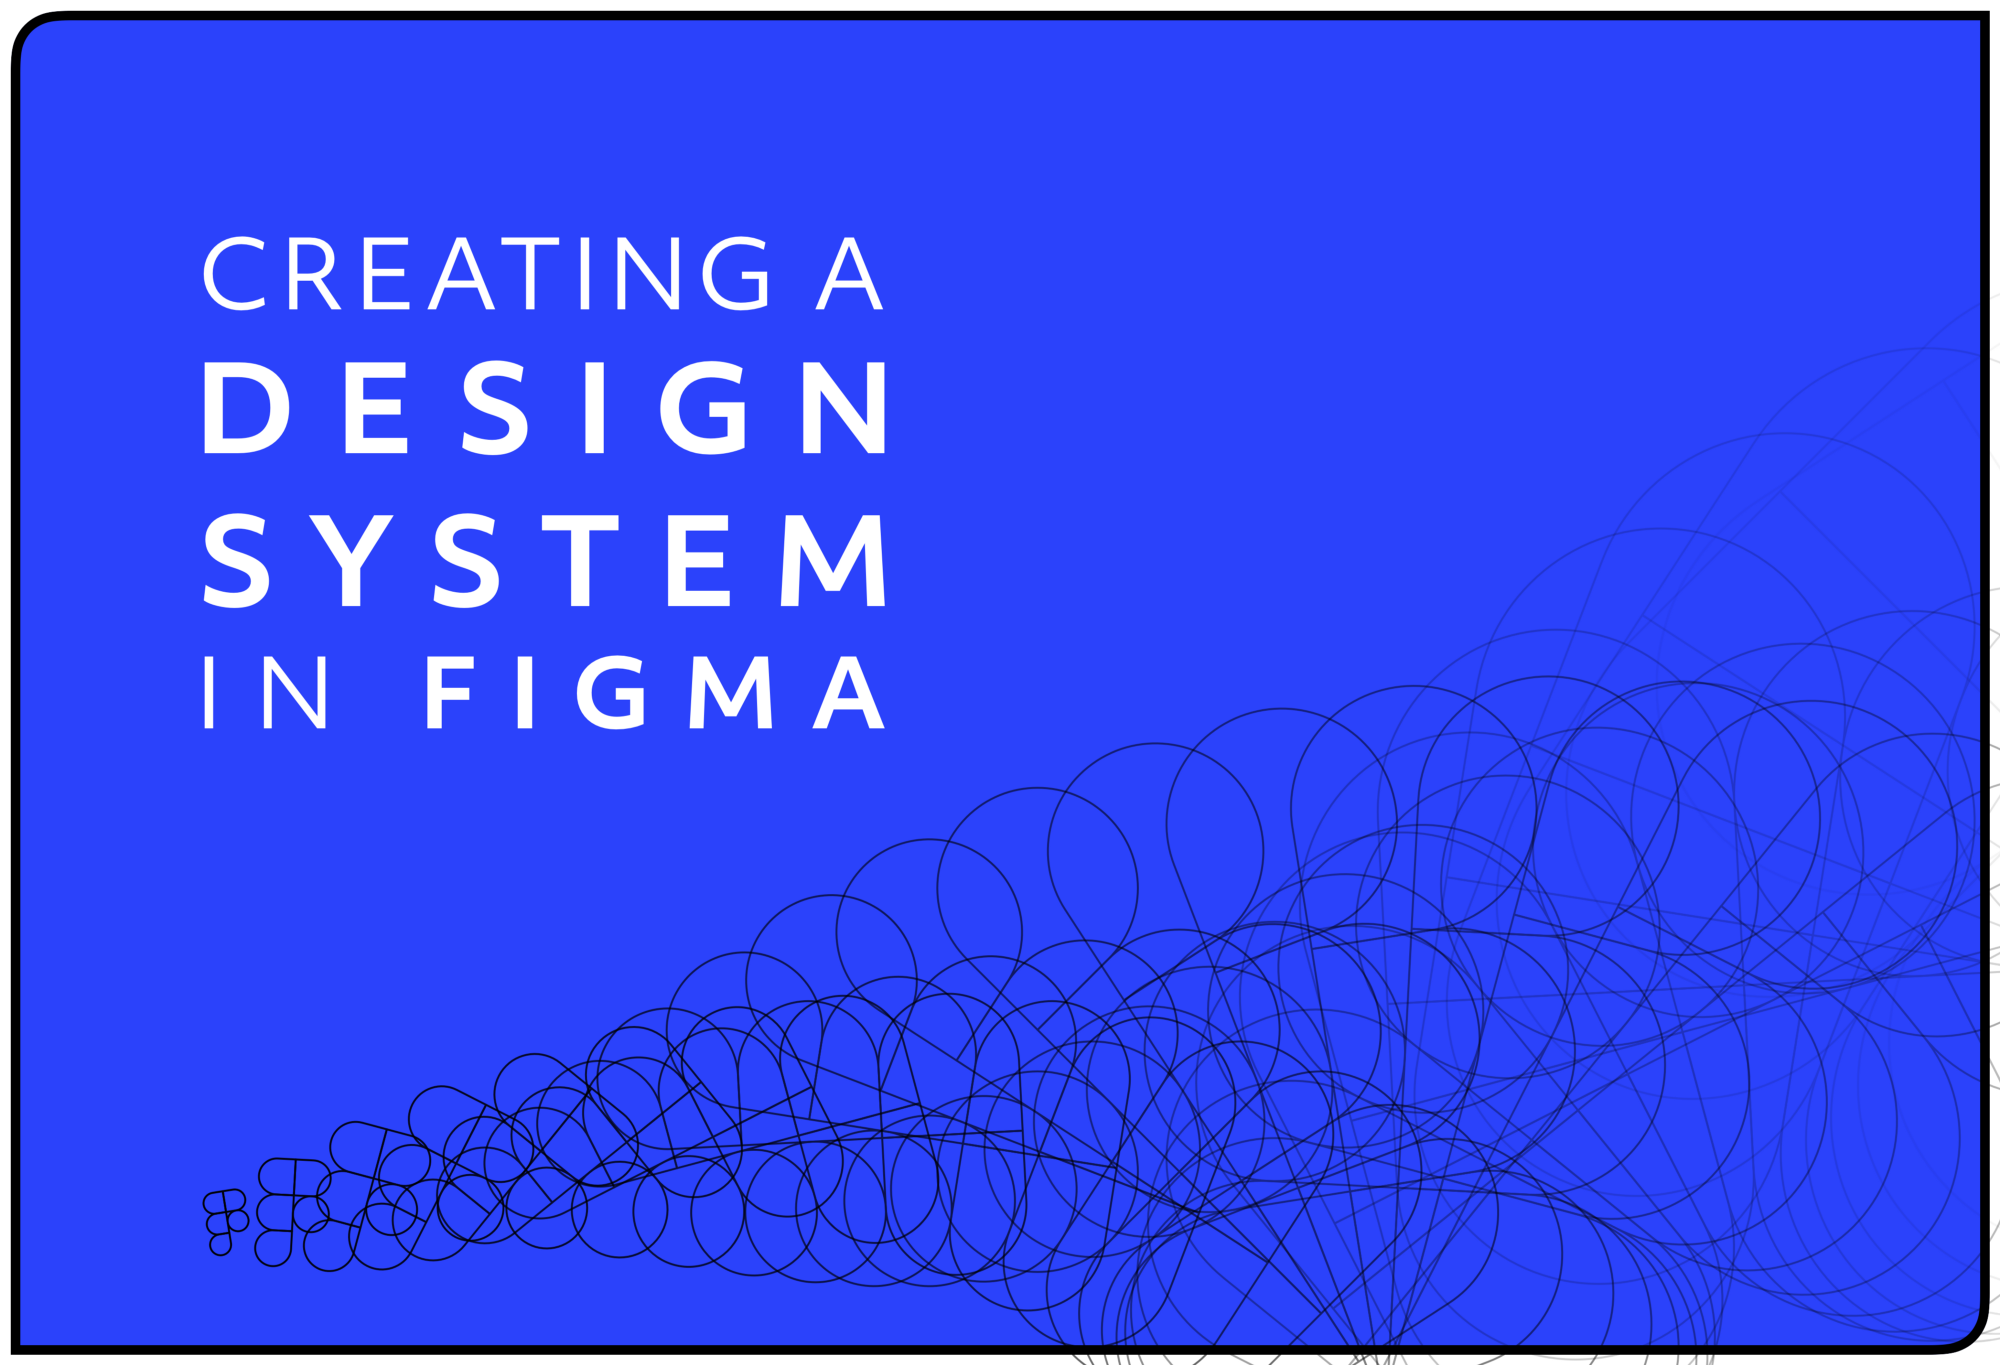 Blue background with the words 'Creating a design system in Figma' in white